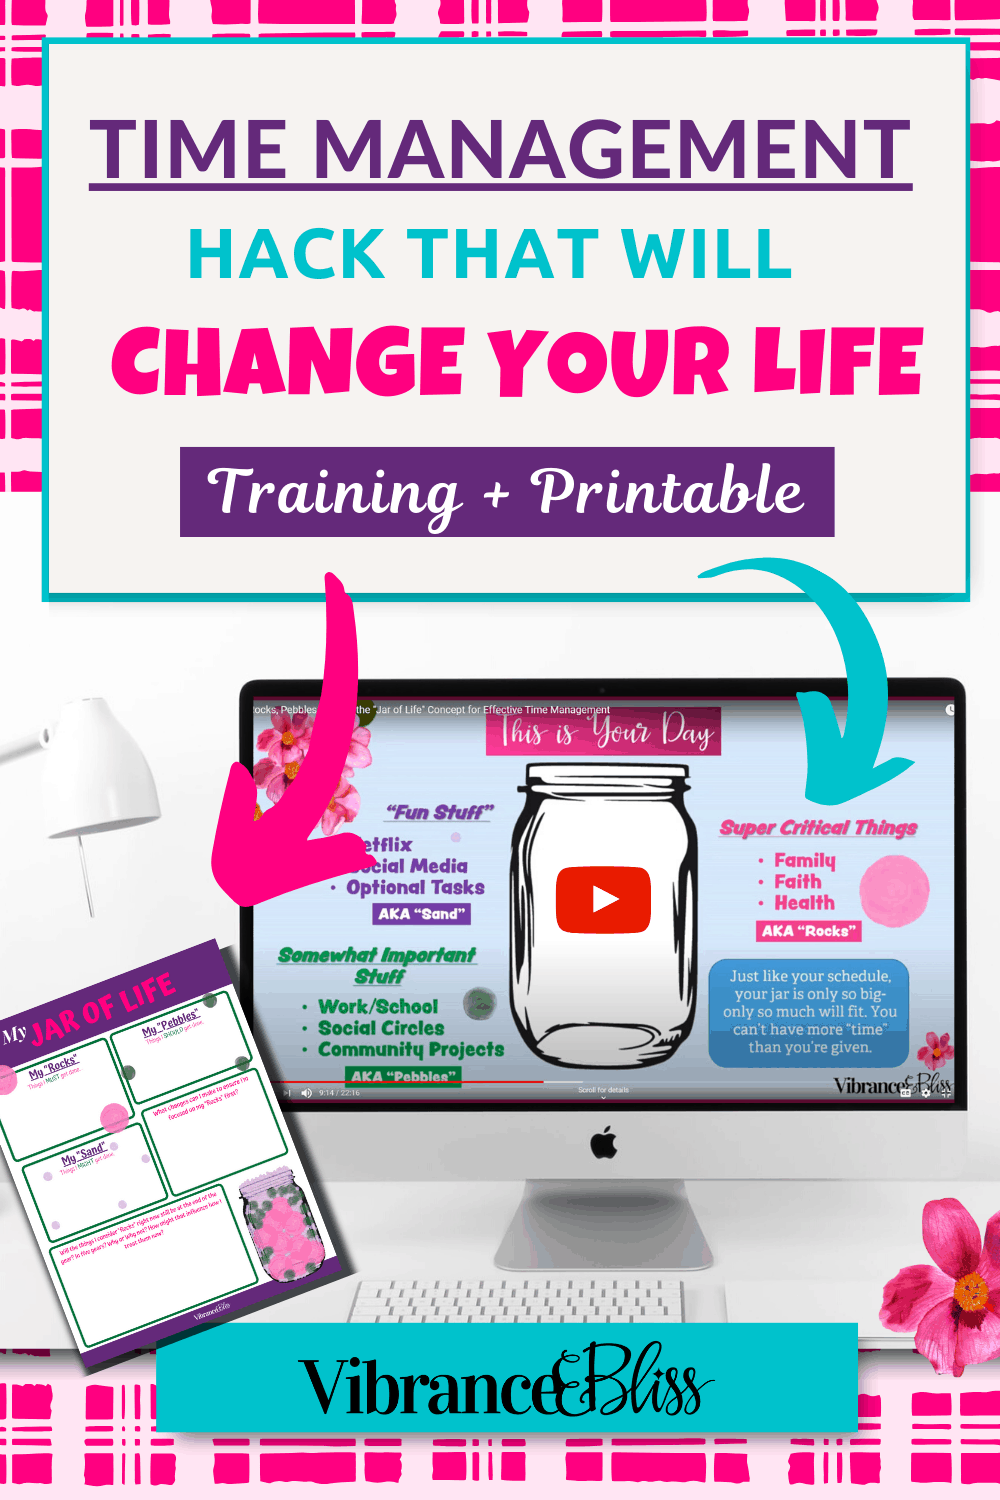 Quick and easy time management hack that change your life- free training & printable.